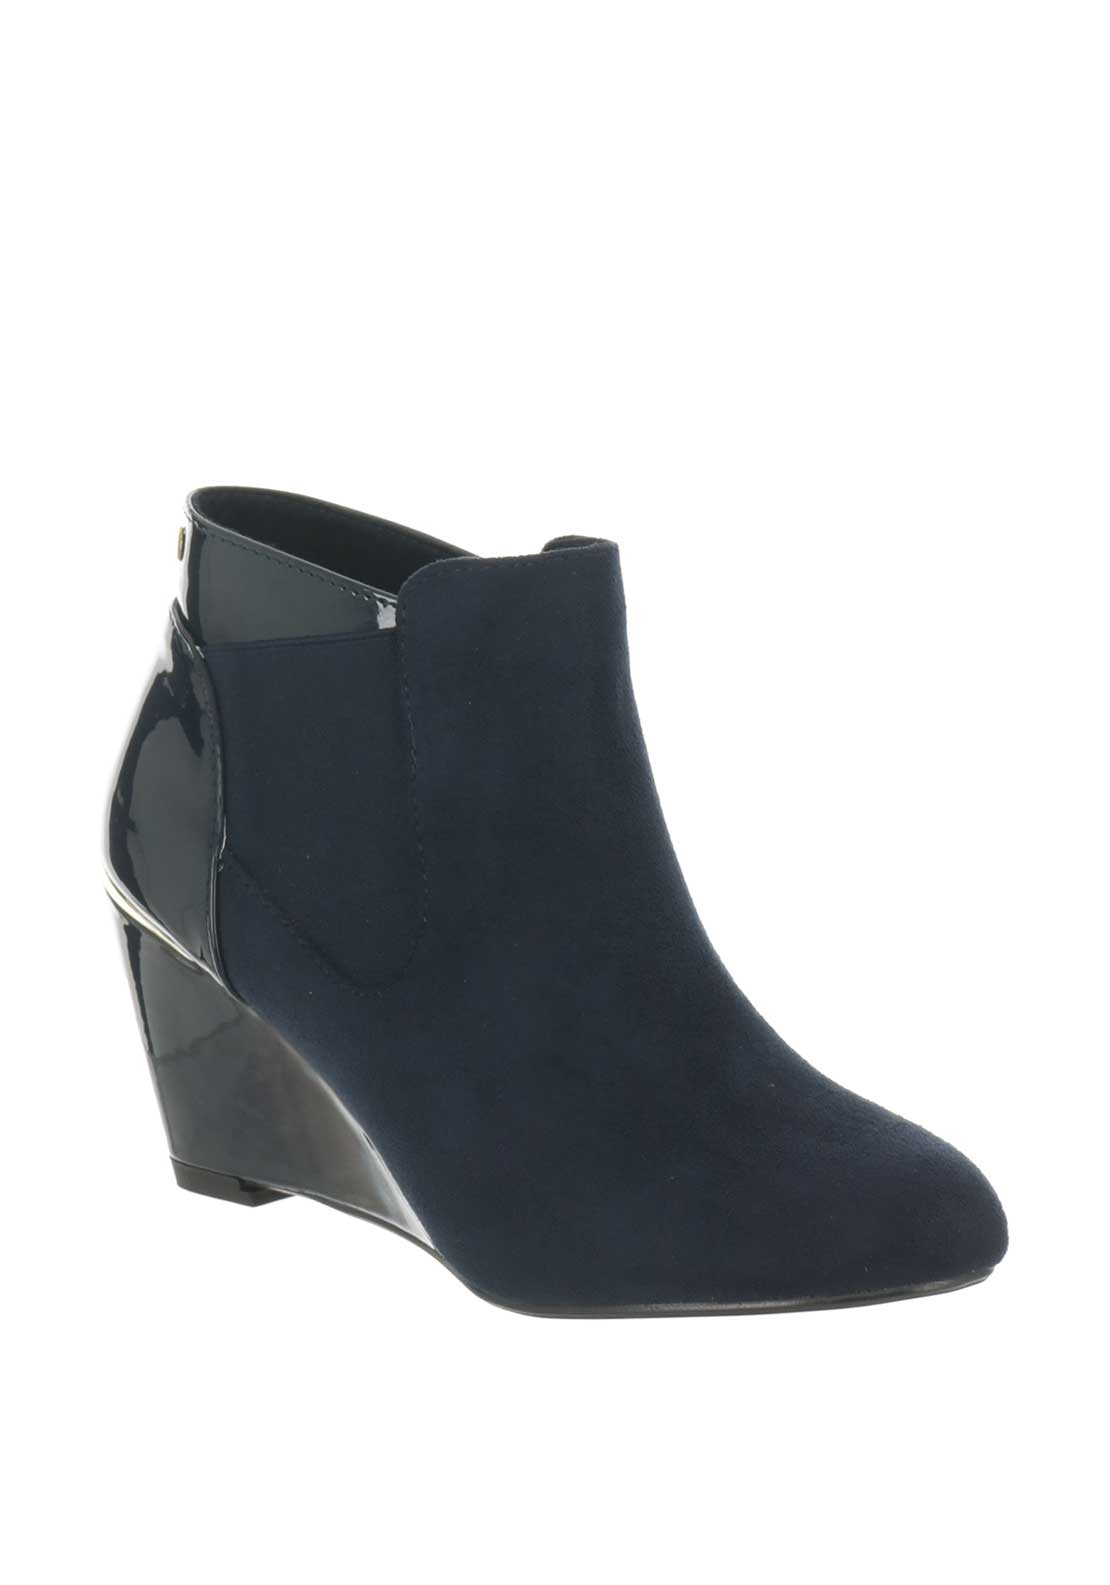 Kate Appleby Buckland Patent Wedge Chelsea Boots, Navy